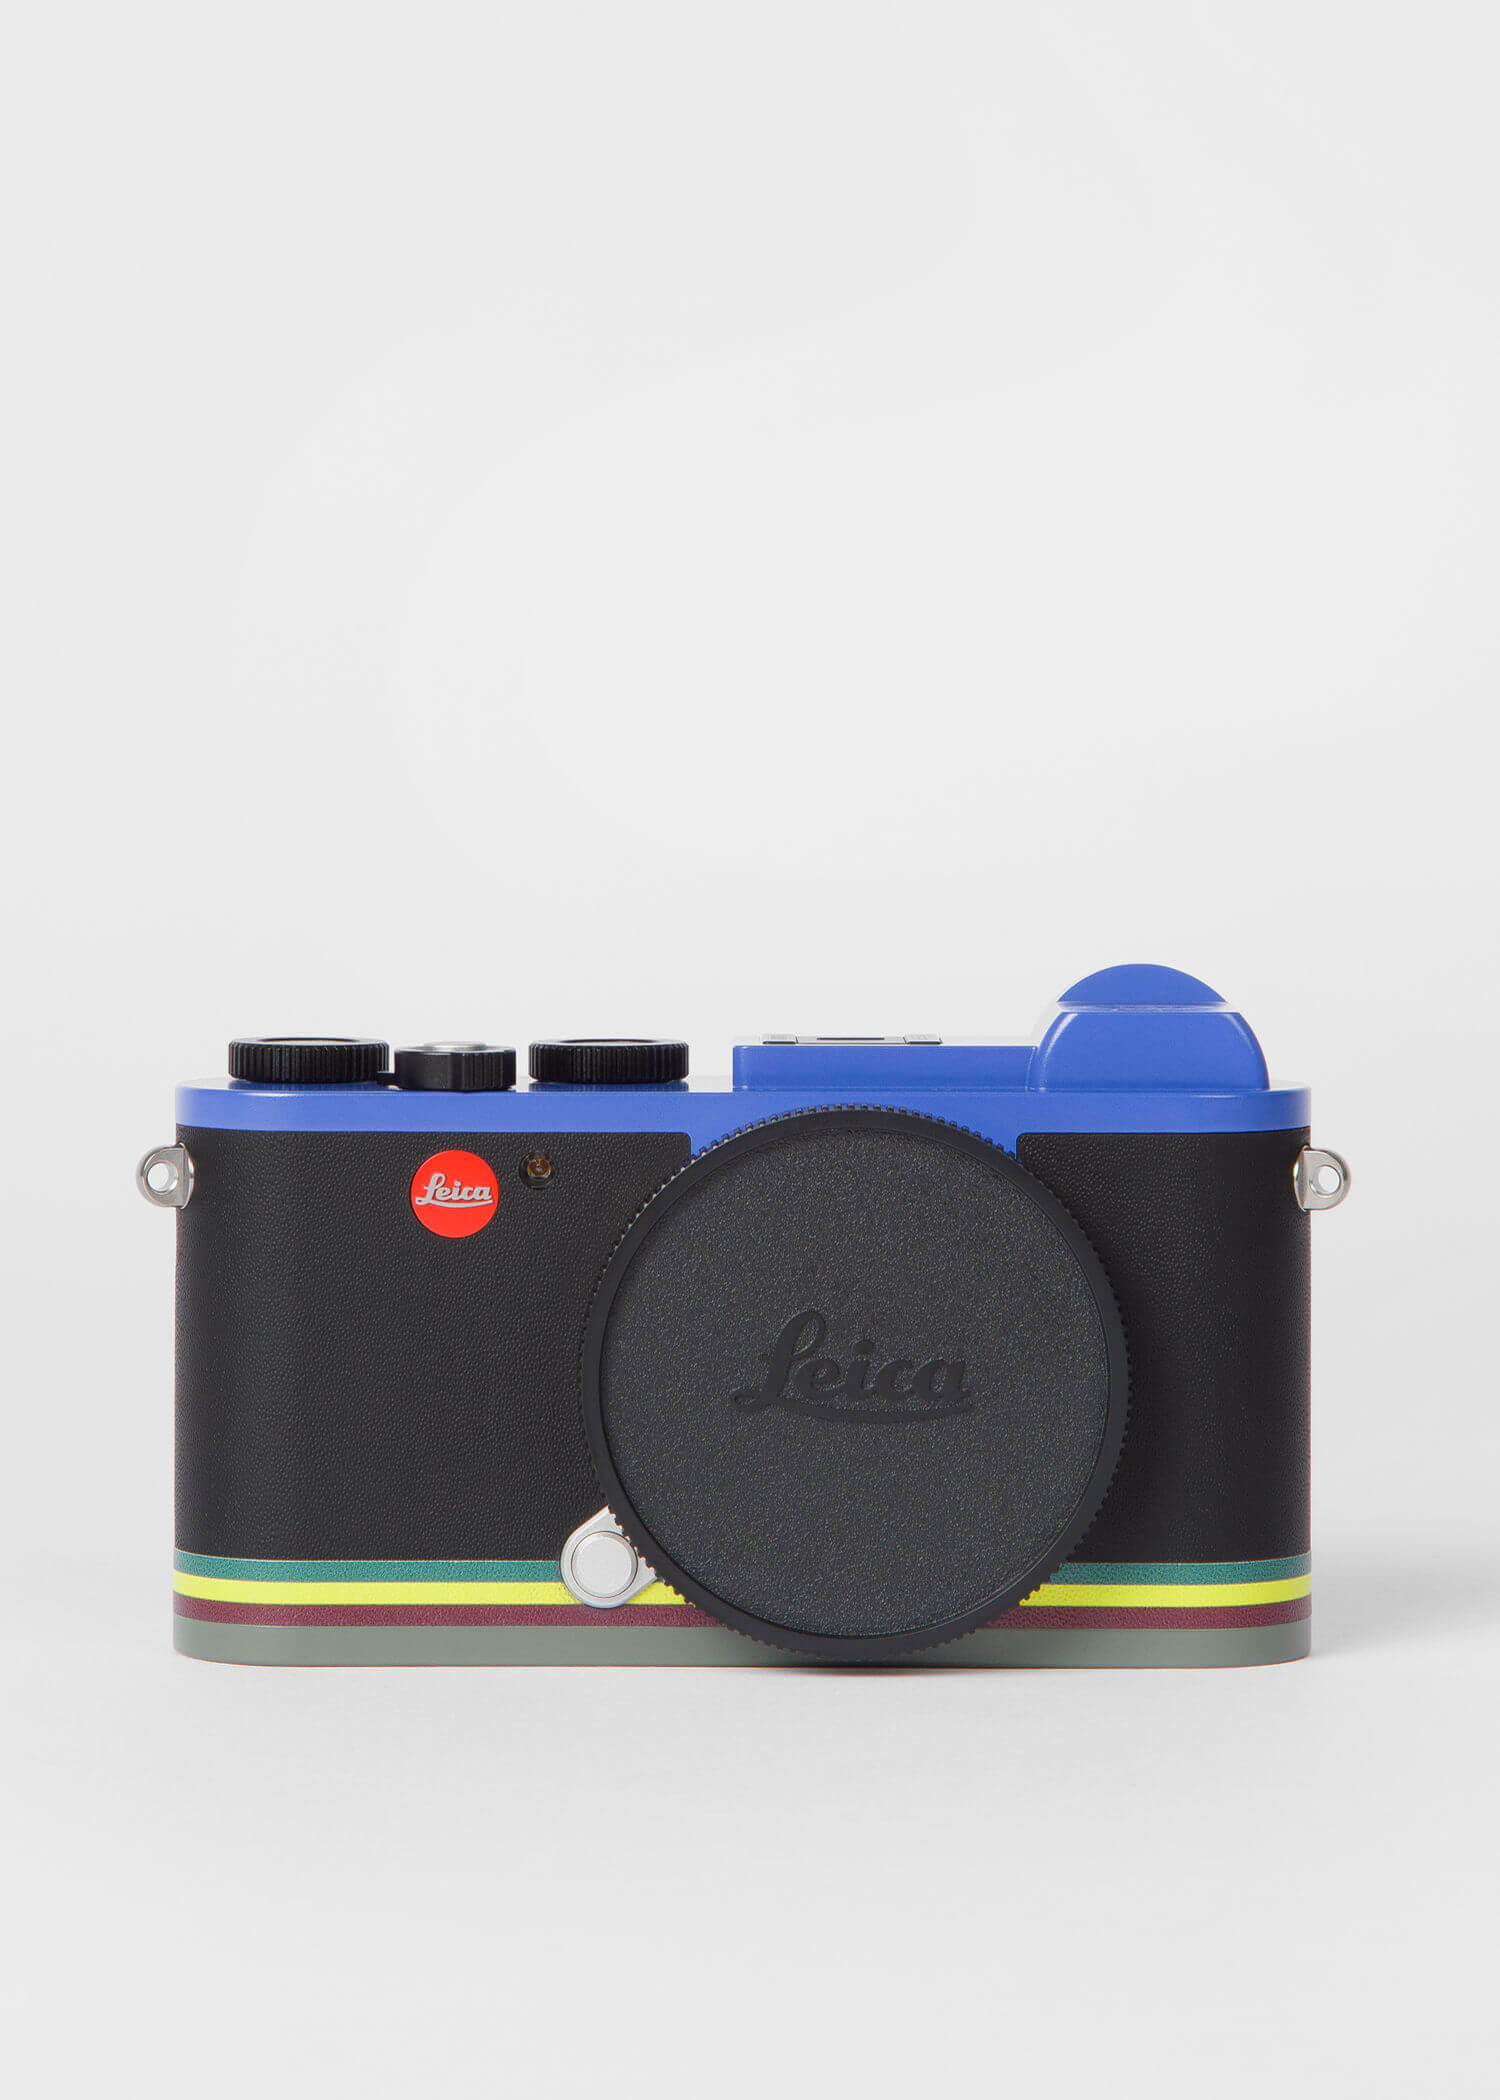 Leica CL Edition Paul Smith Mirrorless Digital Camera with 18mm Lens 6